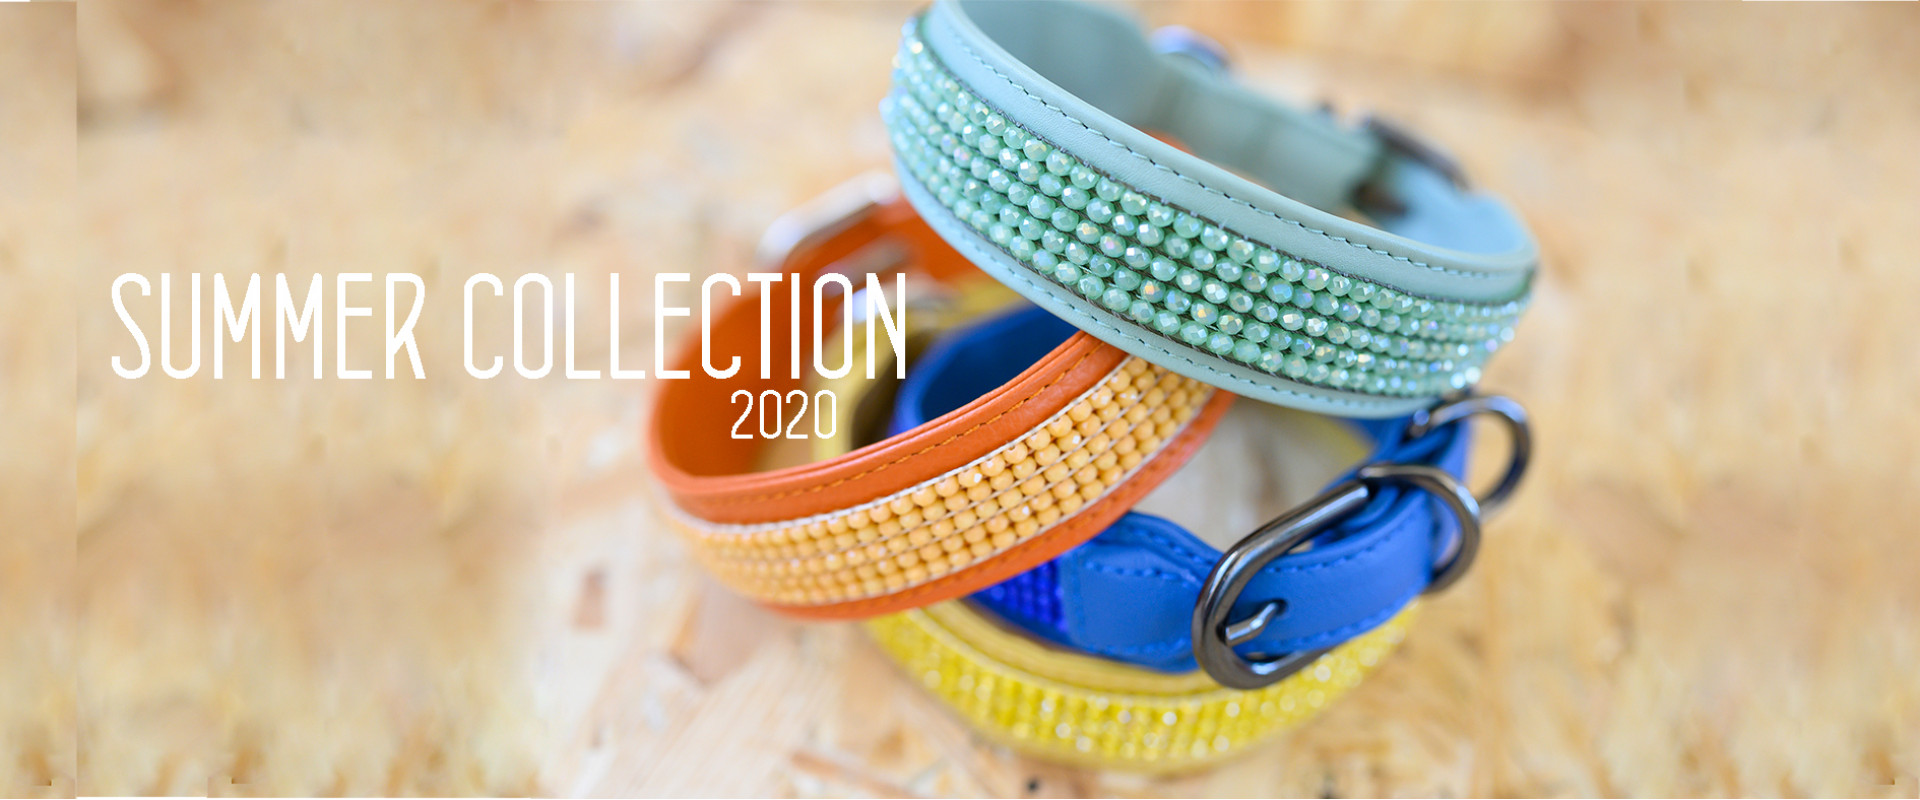 Summer Collection 2020 | Designer-quality pet accessories by zikos